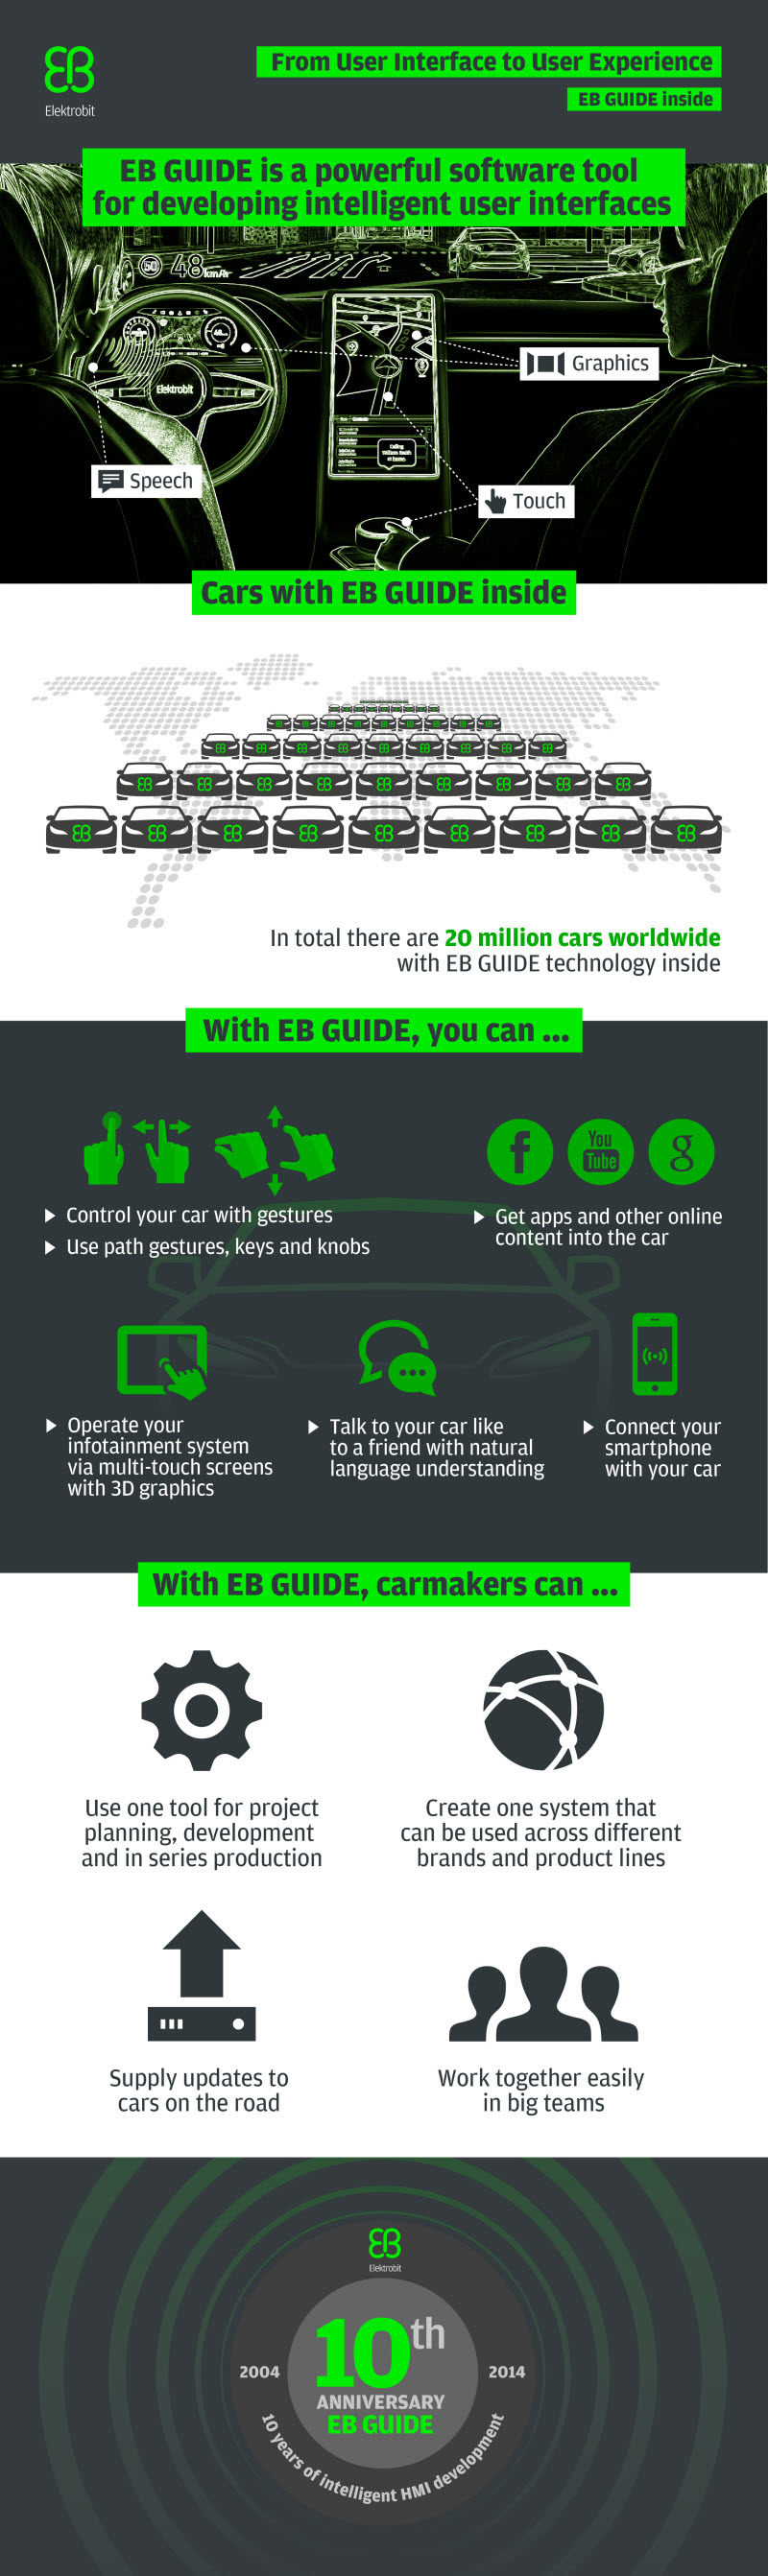 EB_GUIDE_infographic_10years